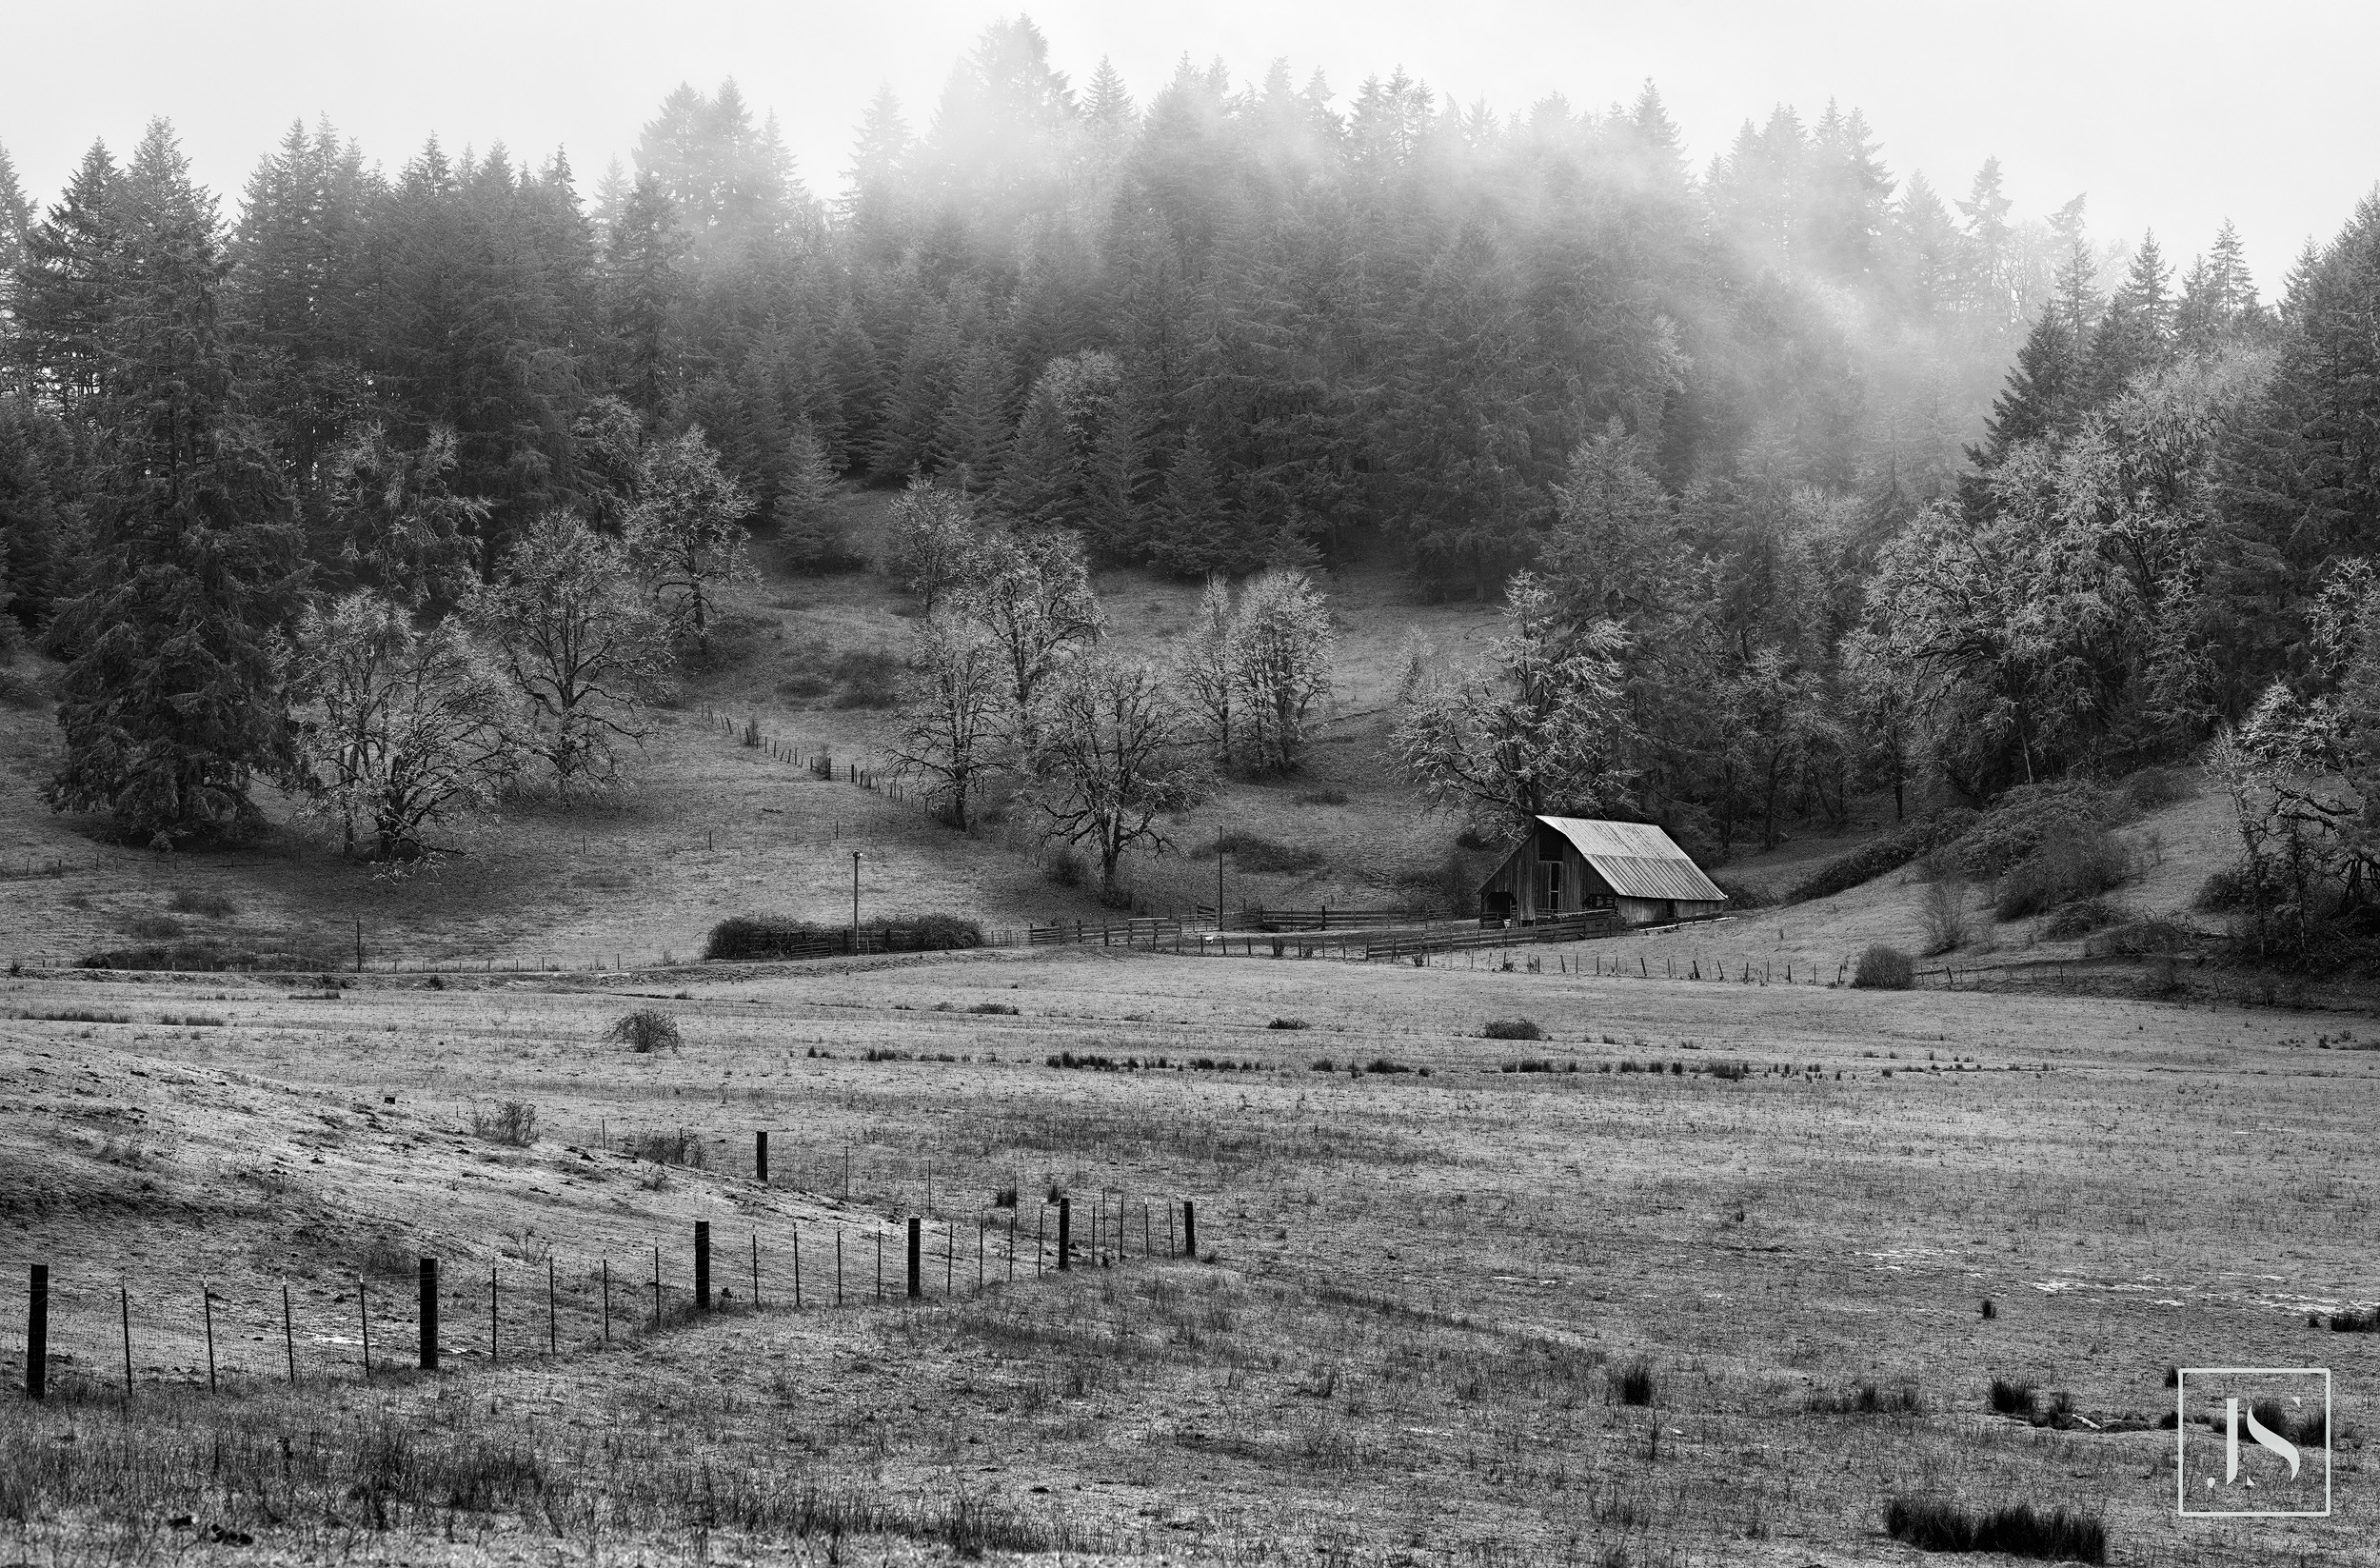 Farm in Winter-Veneta, OR 2016